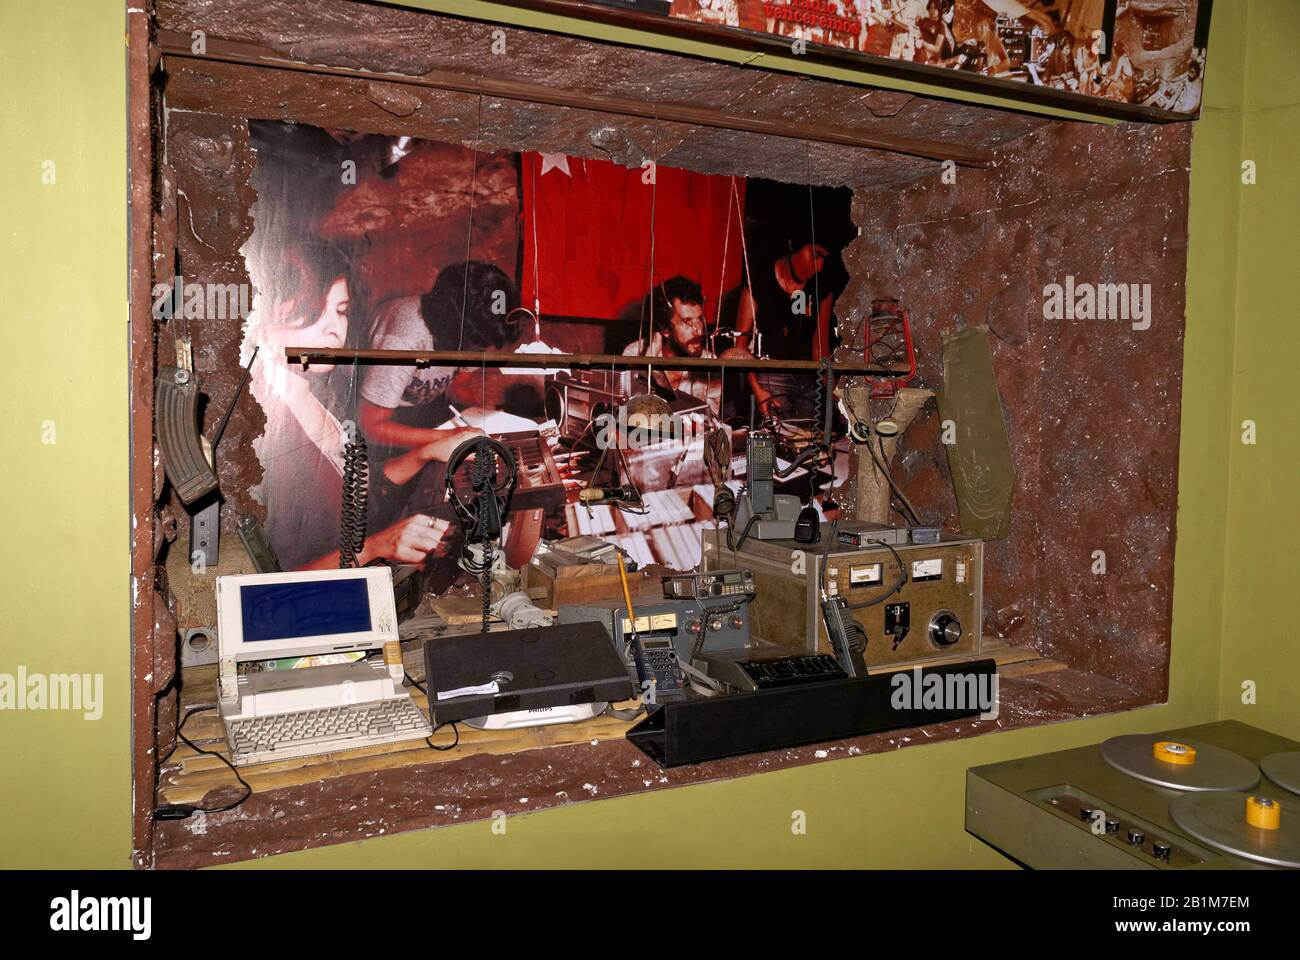 Reconstruction of Radio Venceremos FMLN underground radio station in the Museo de la Palabra y la Imagen or Museum of Word and Image in San Salvador, Stock Photo